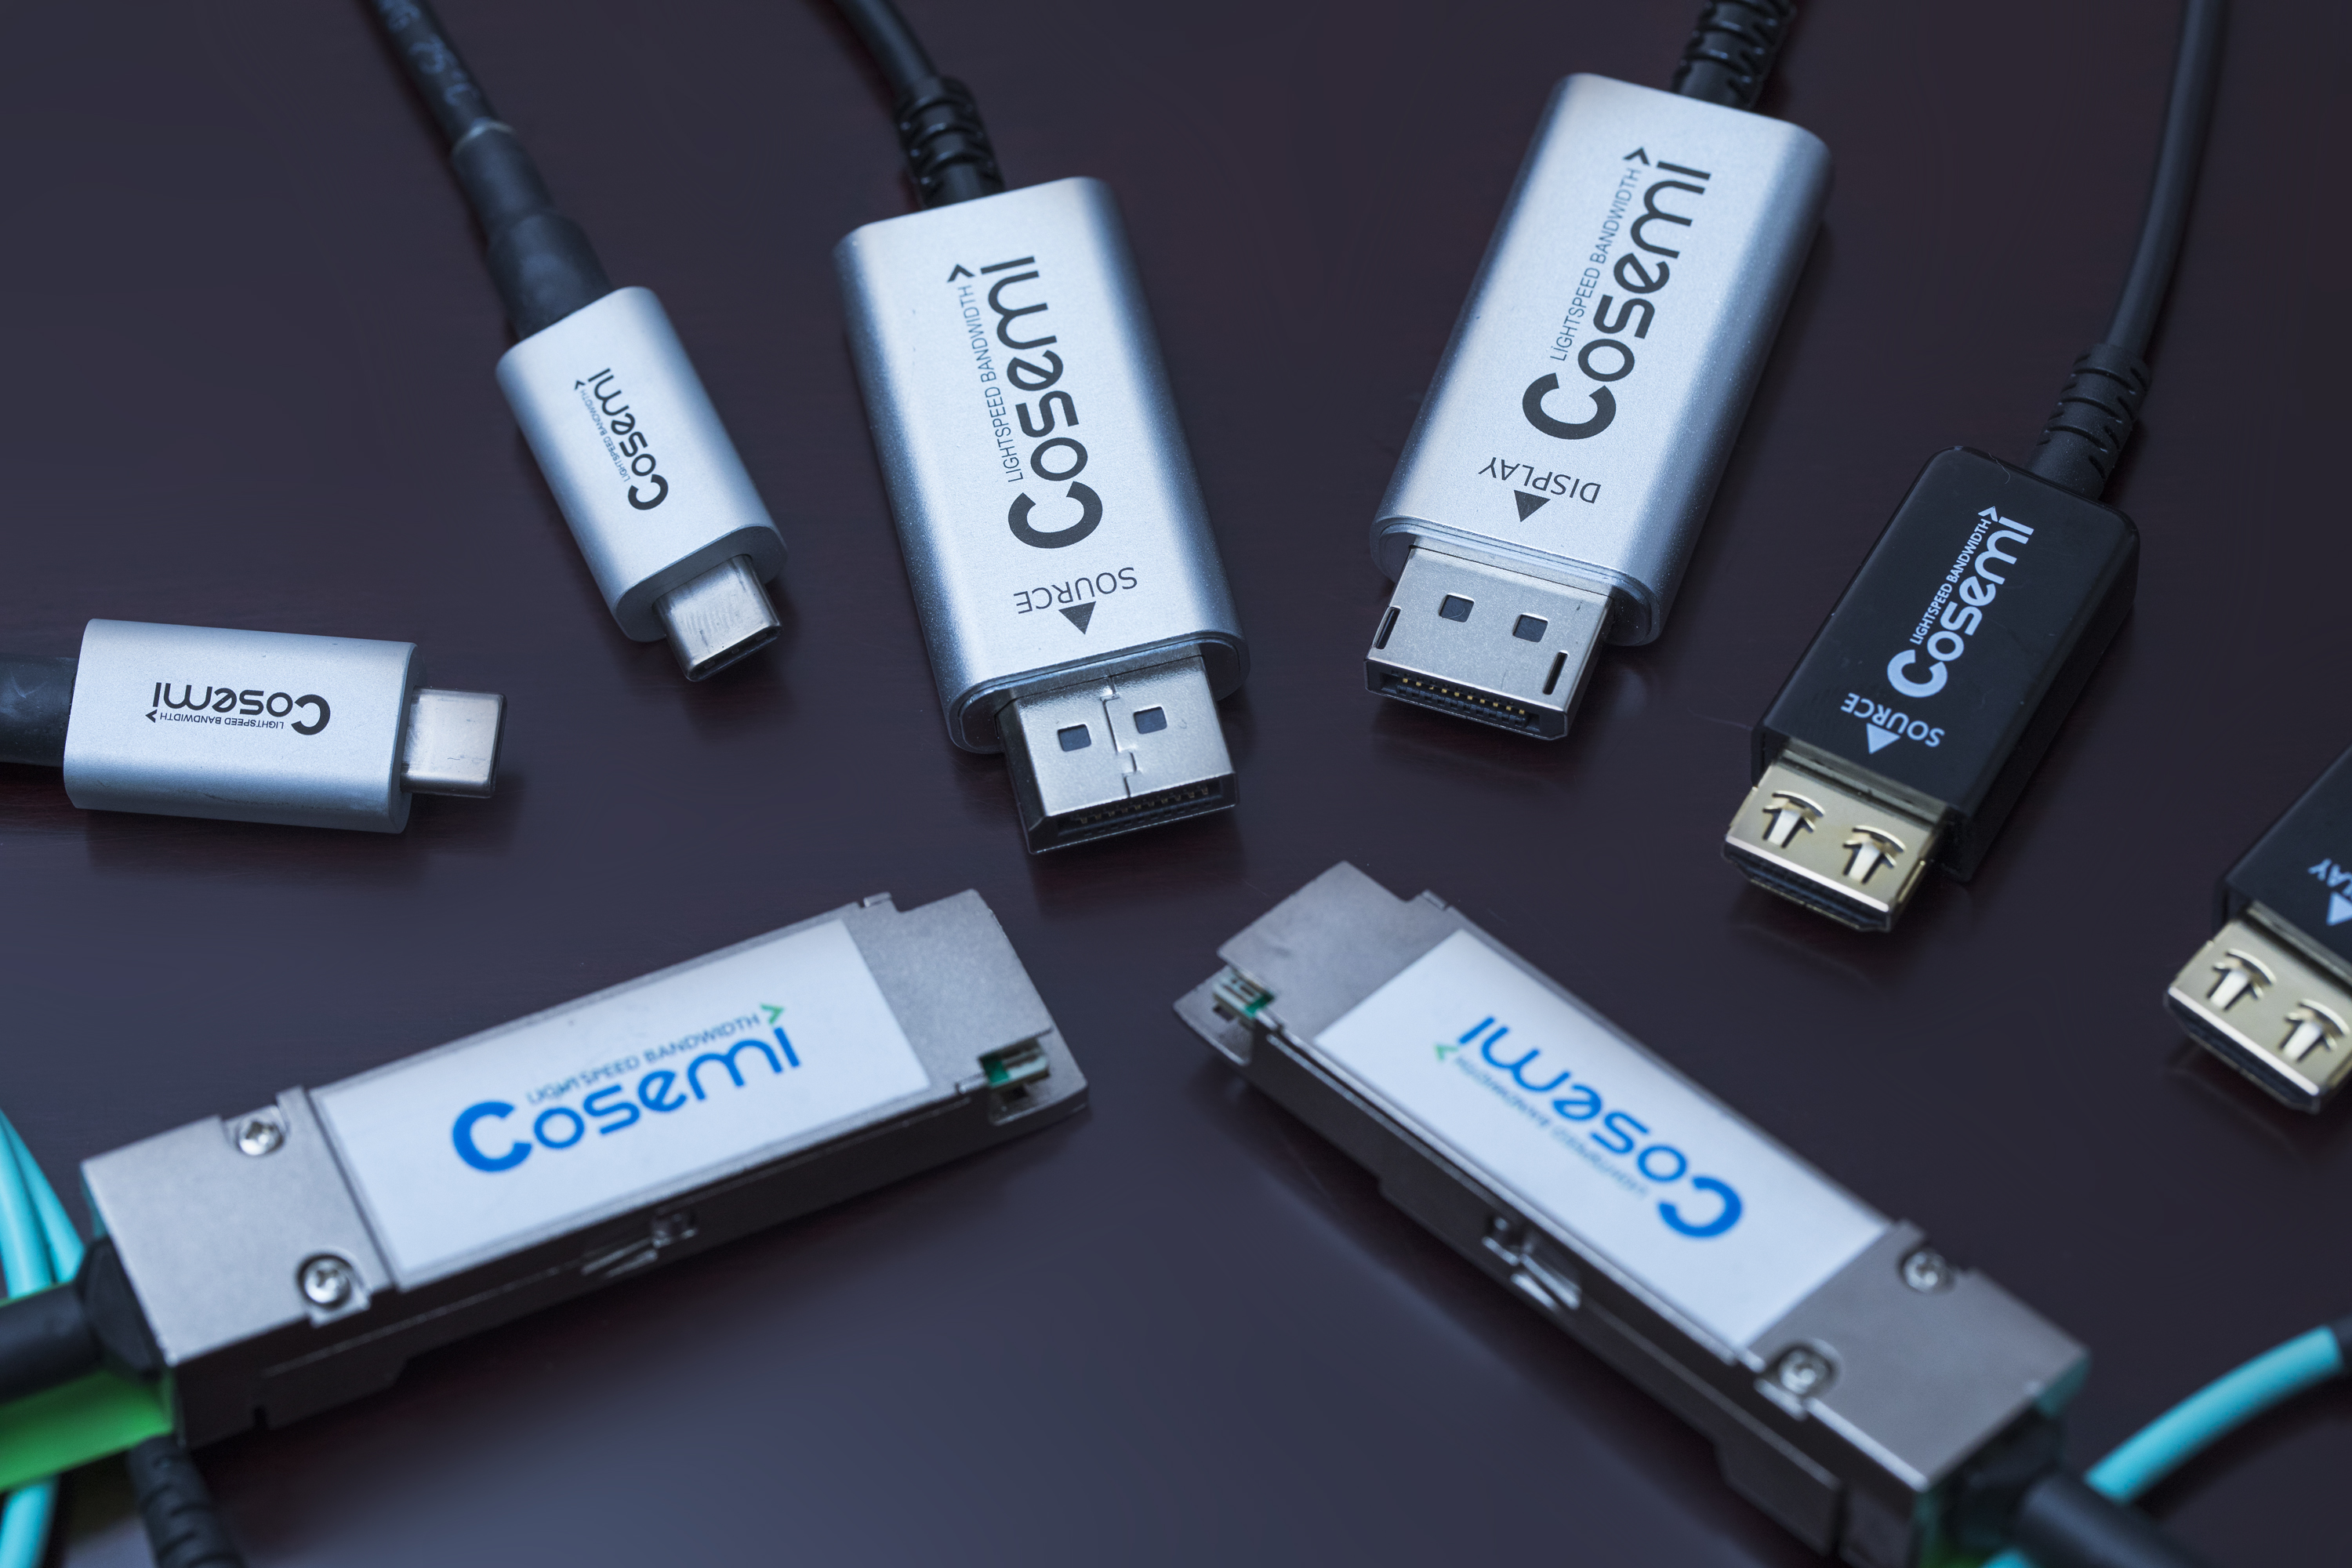 Cosemi Active Optical Cables